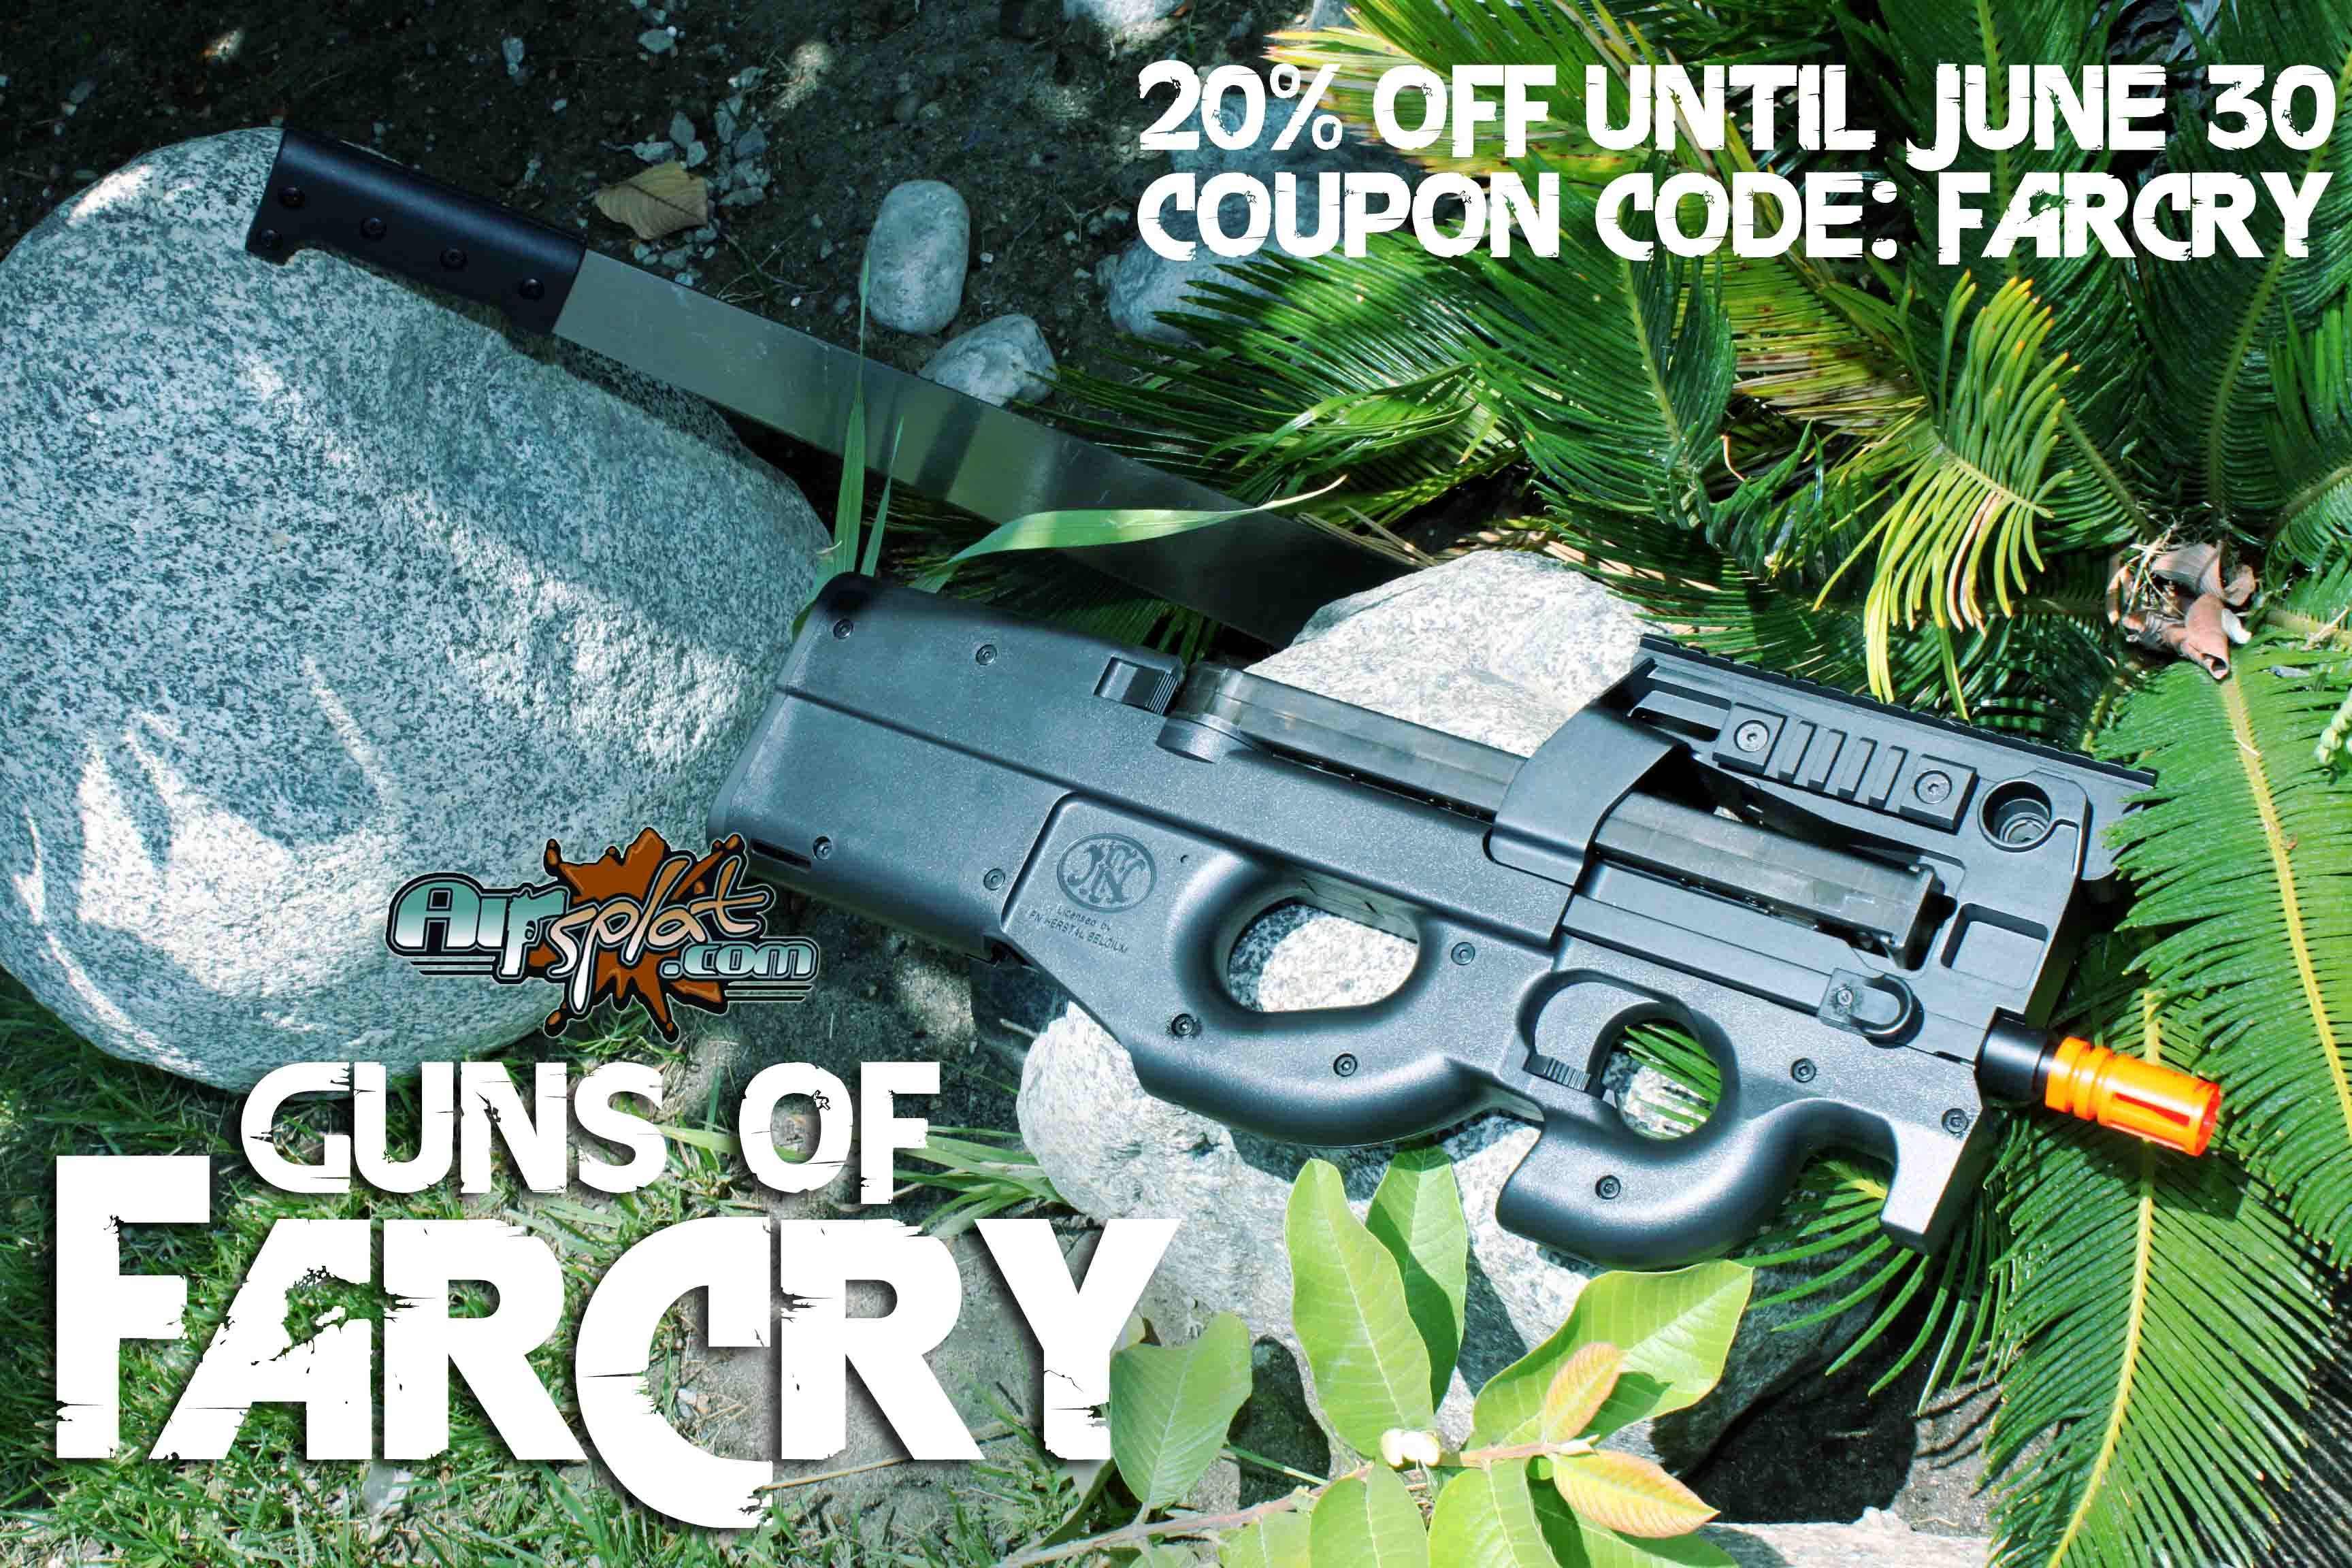 Guns of FarCry are now available at AirSplat.com!! Take 20% off with coupon code 'FARCRY' http://www.airsplat.com/index.asp?FSCat=75  FN P90 Tactical Airsoft AEG Rifle AG76 $219.99 http://www.airsplat.com/Itemdesc.asp?ic=ERM-FN-P90-AG76